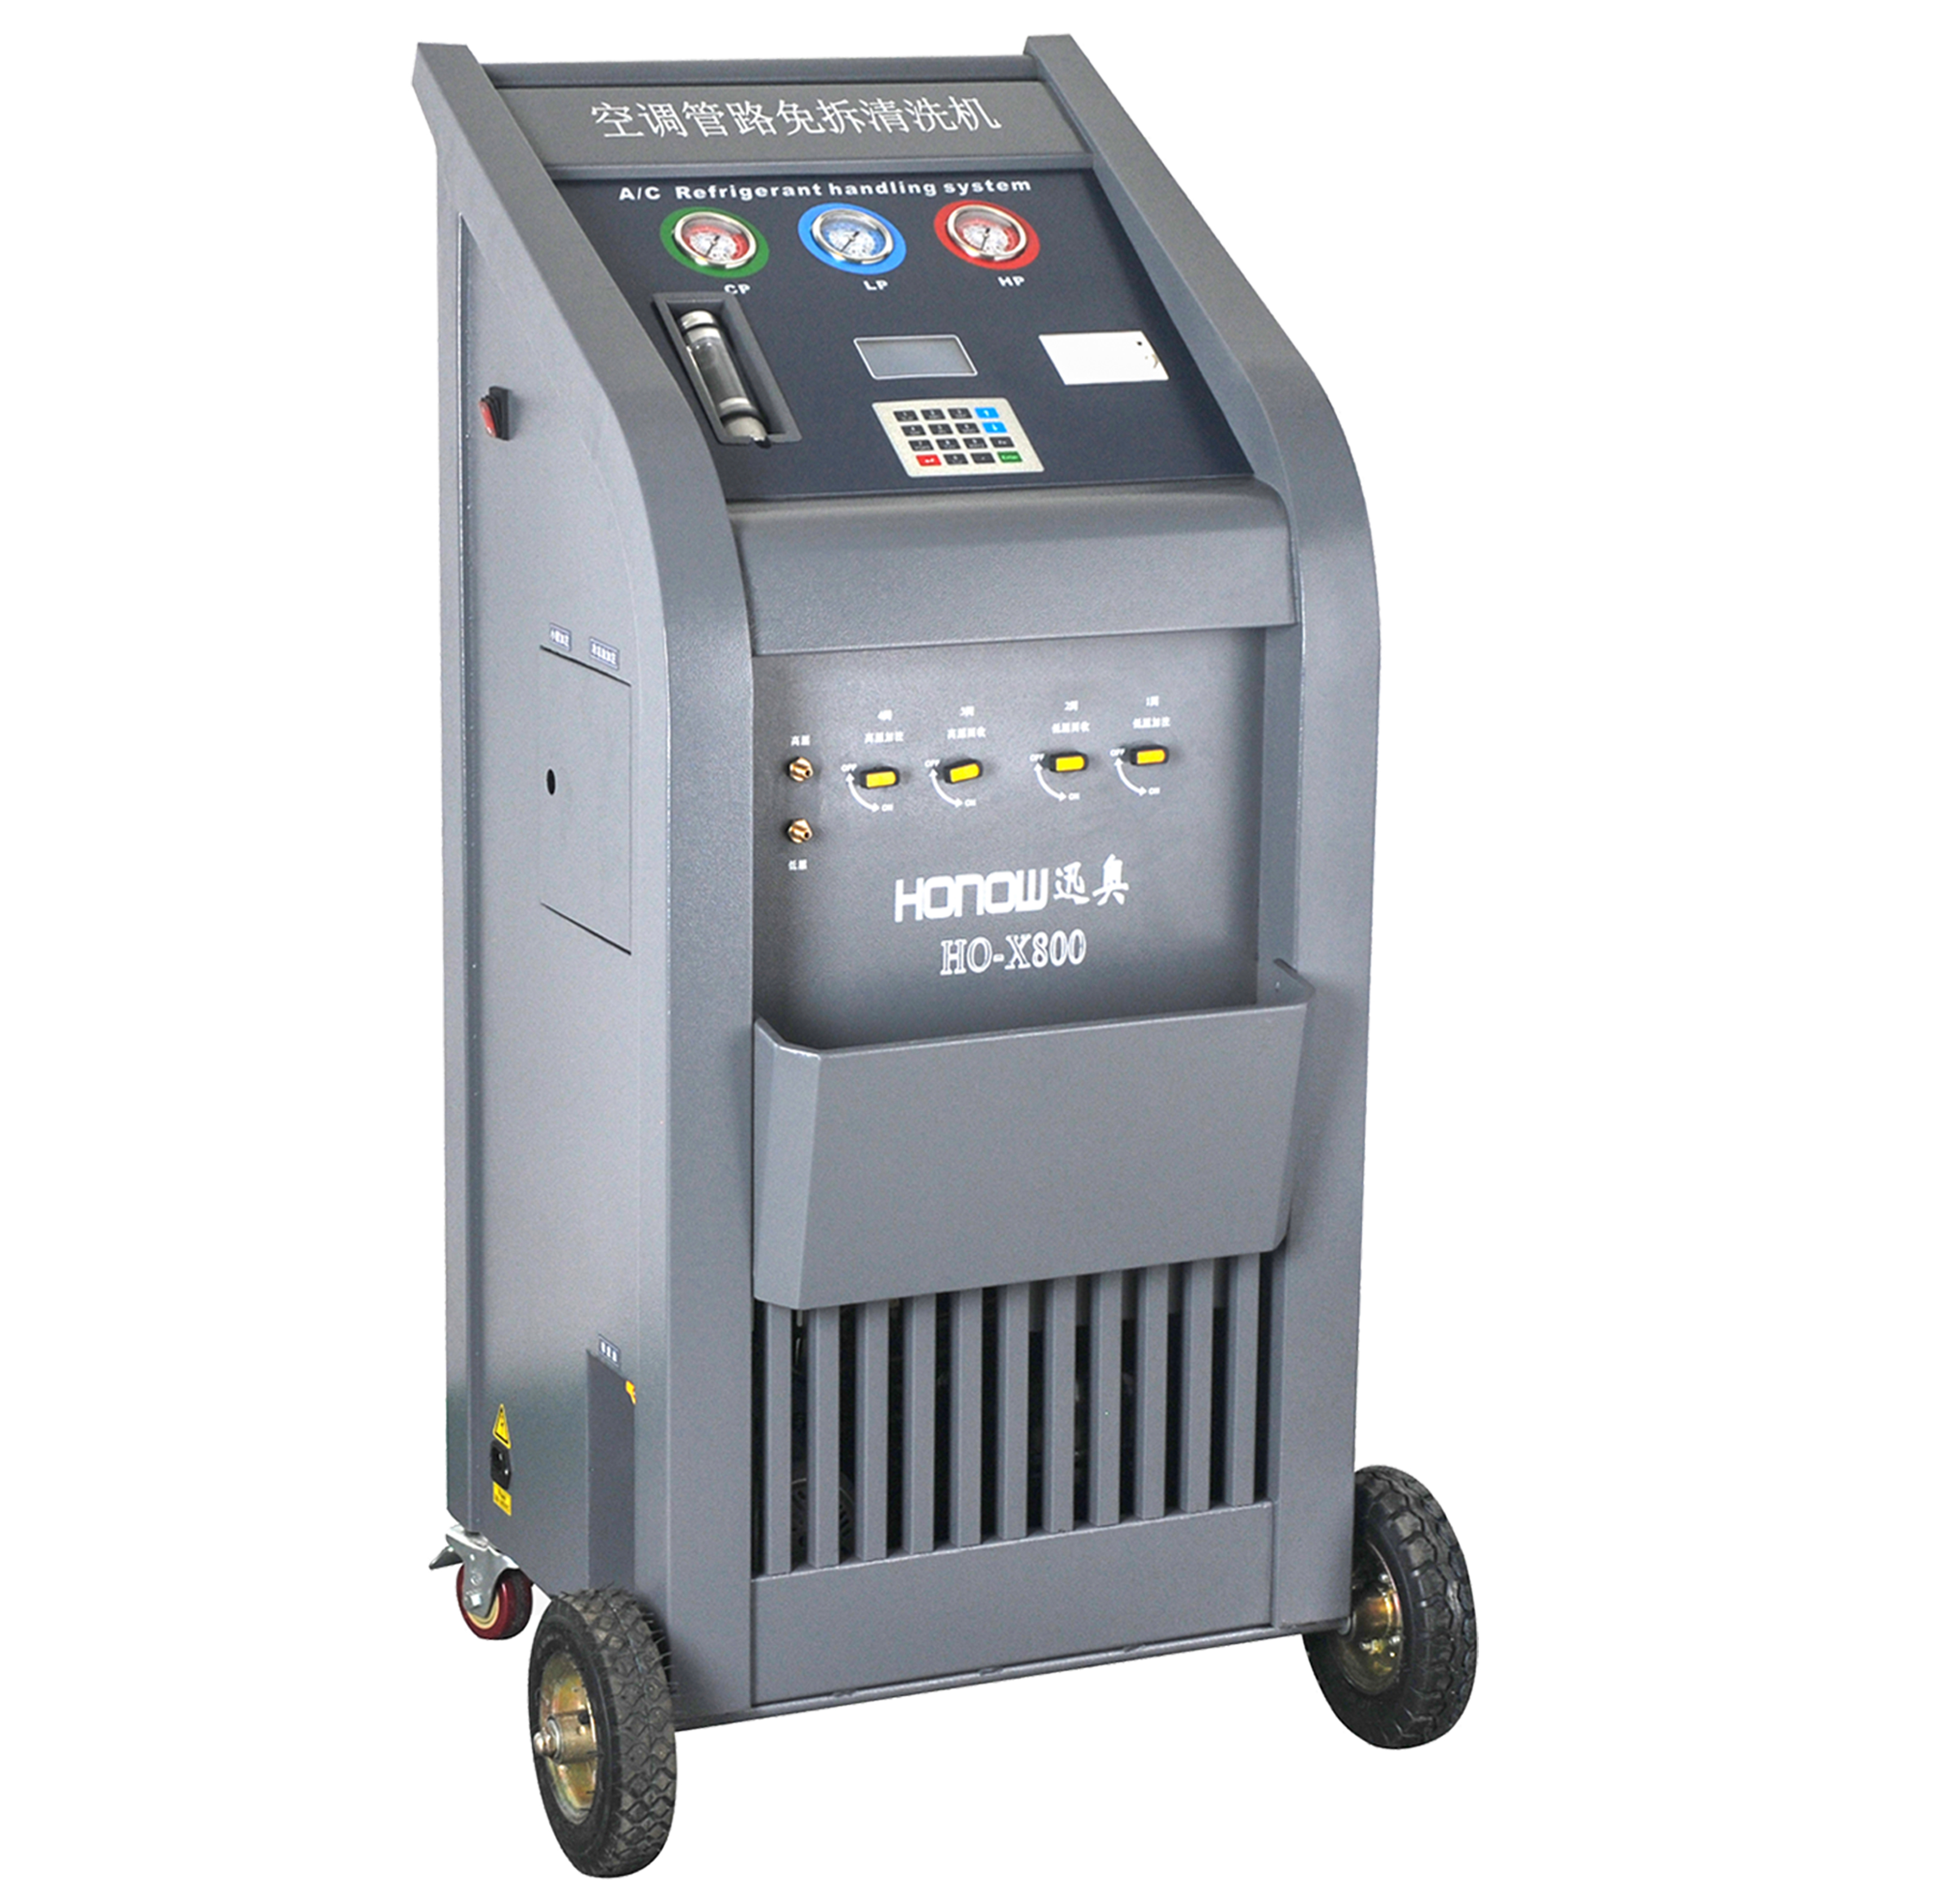 Fully Automatic Car Ac System Flush And Clean Machine & Refrigerant Recycle  Recovery Vacuum And Recharge Machine R134a - Buy A/c Recharge And Recovery